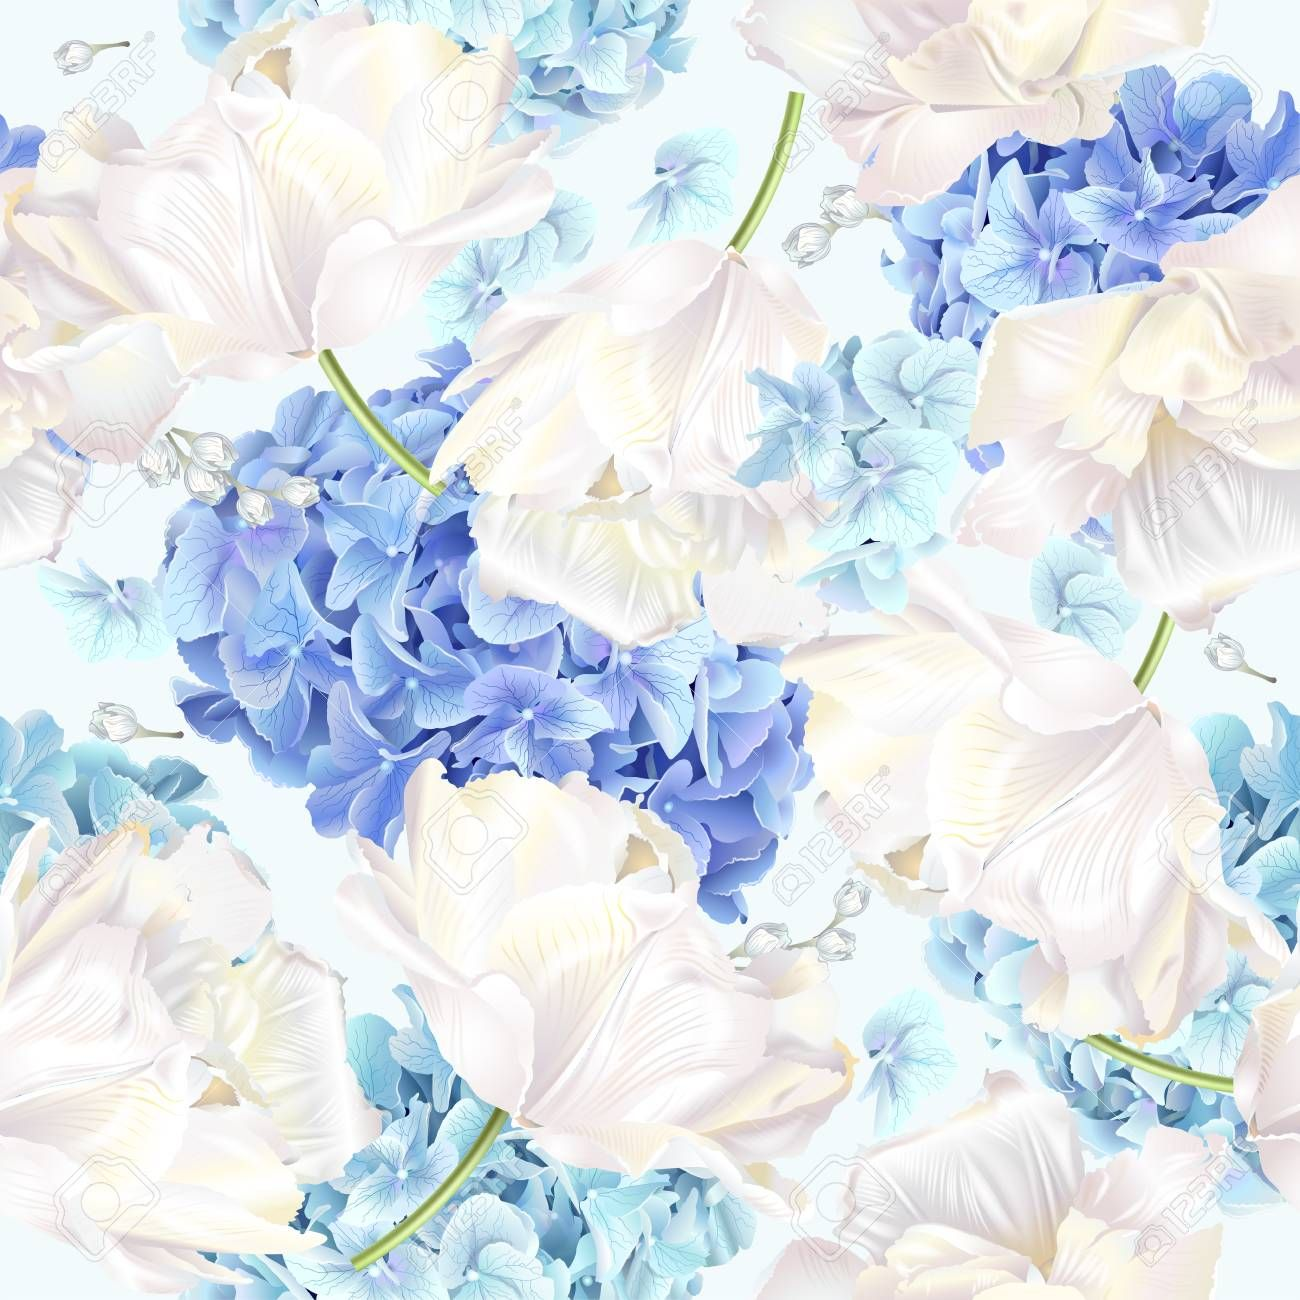 Vector Seamless Pattern With Blue And White Hydrangea Flowers On Blue Background Floral Design For Cosmetics Pe Cool Art Illustration Design Abstract Artwork